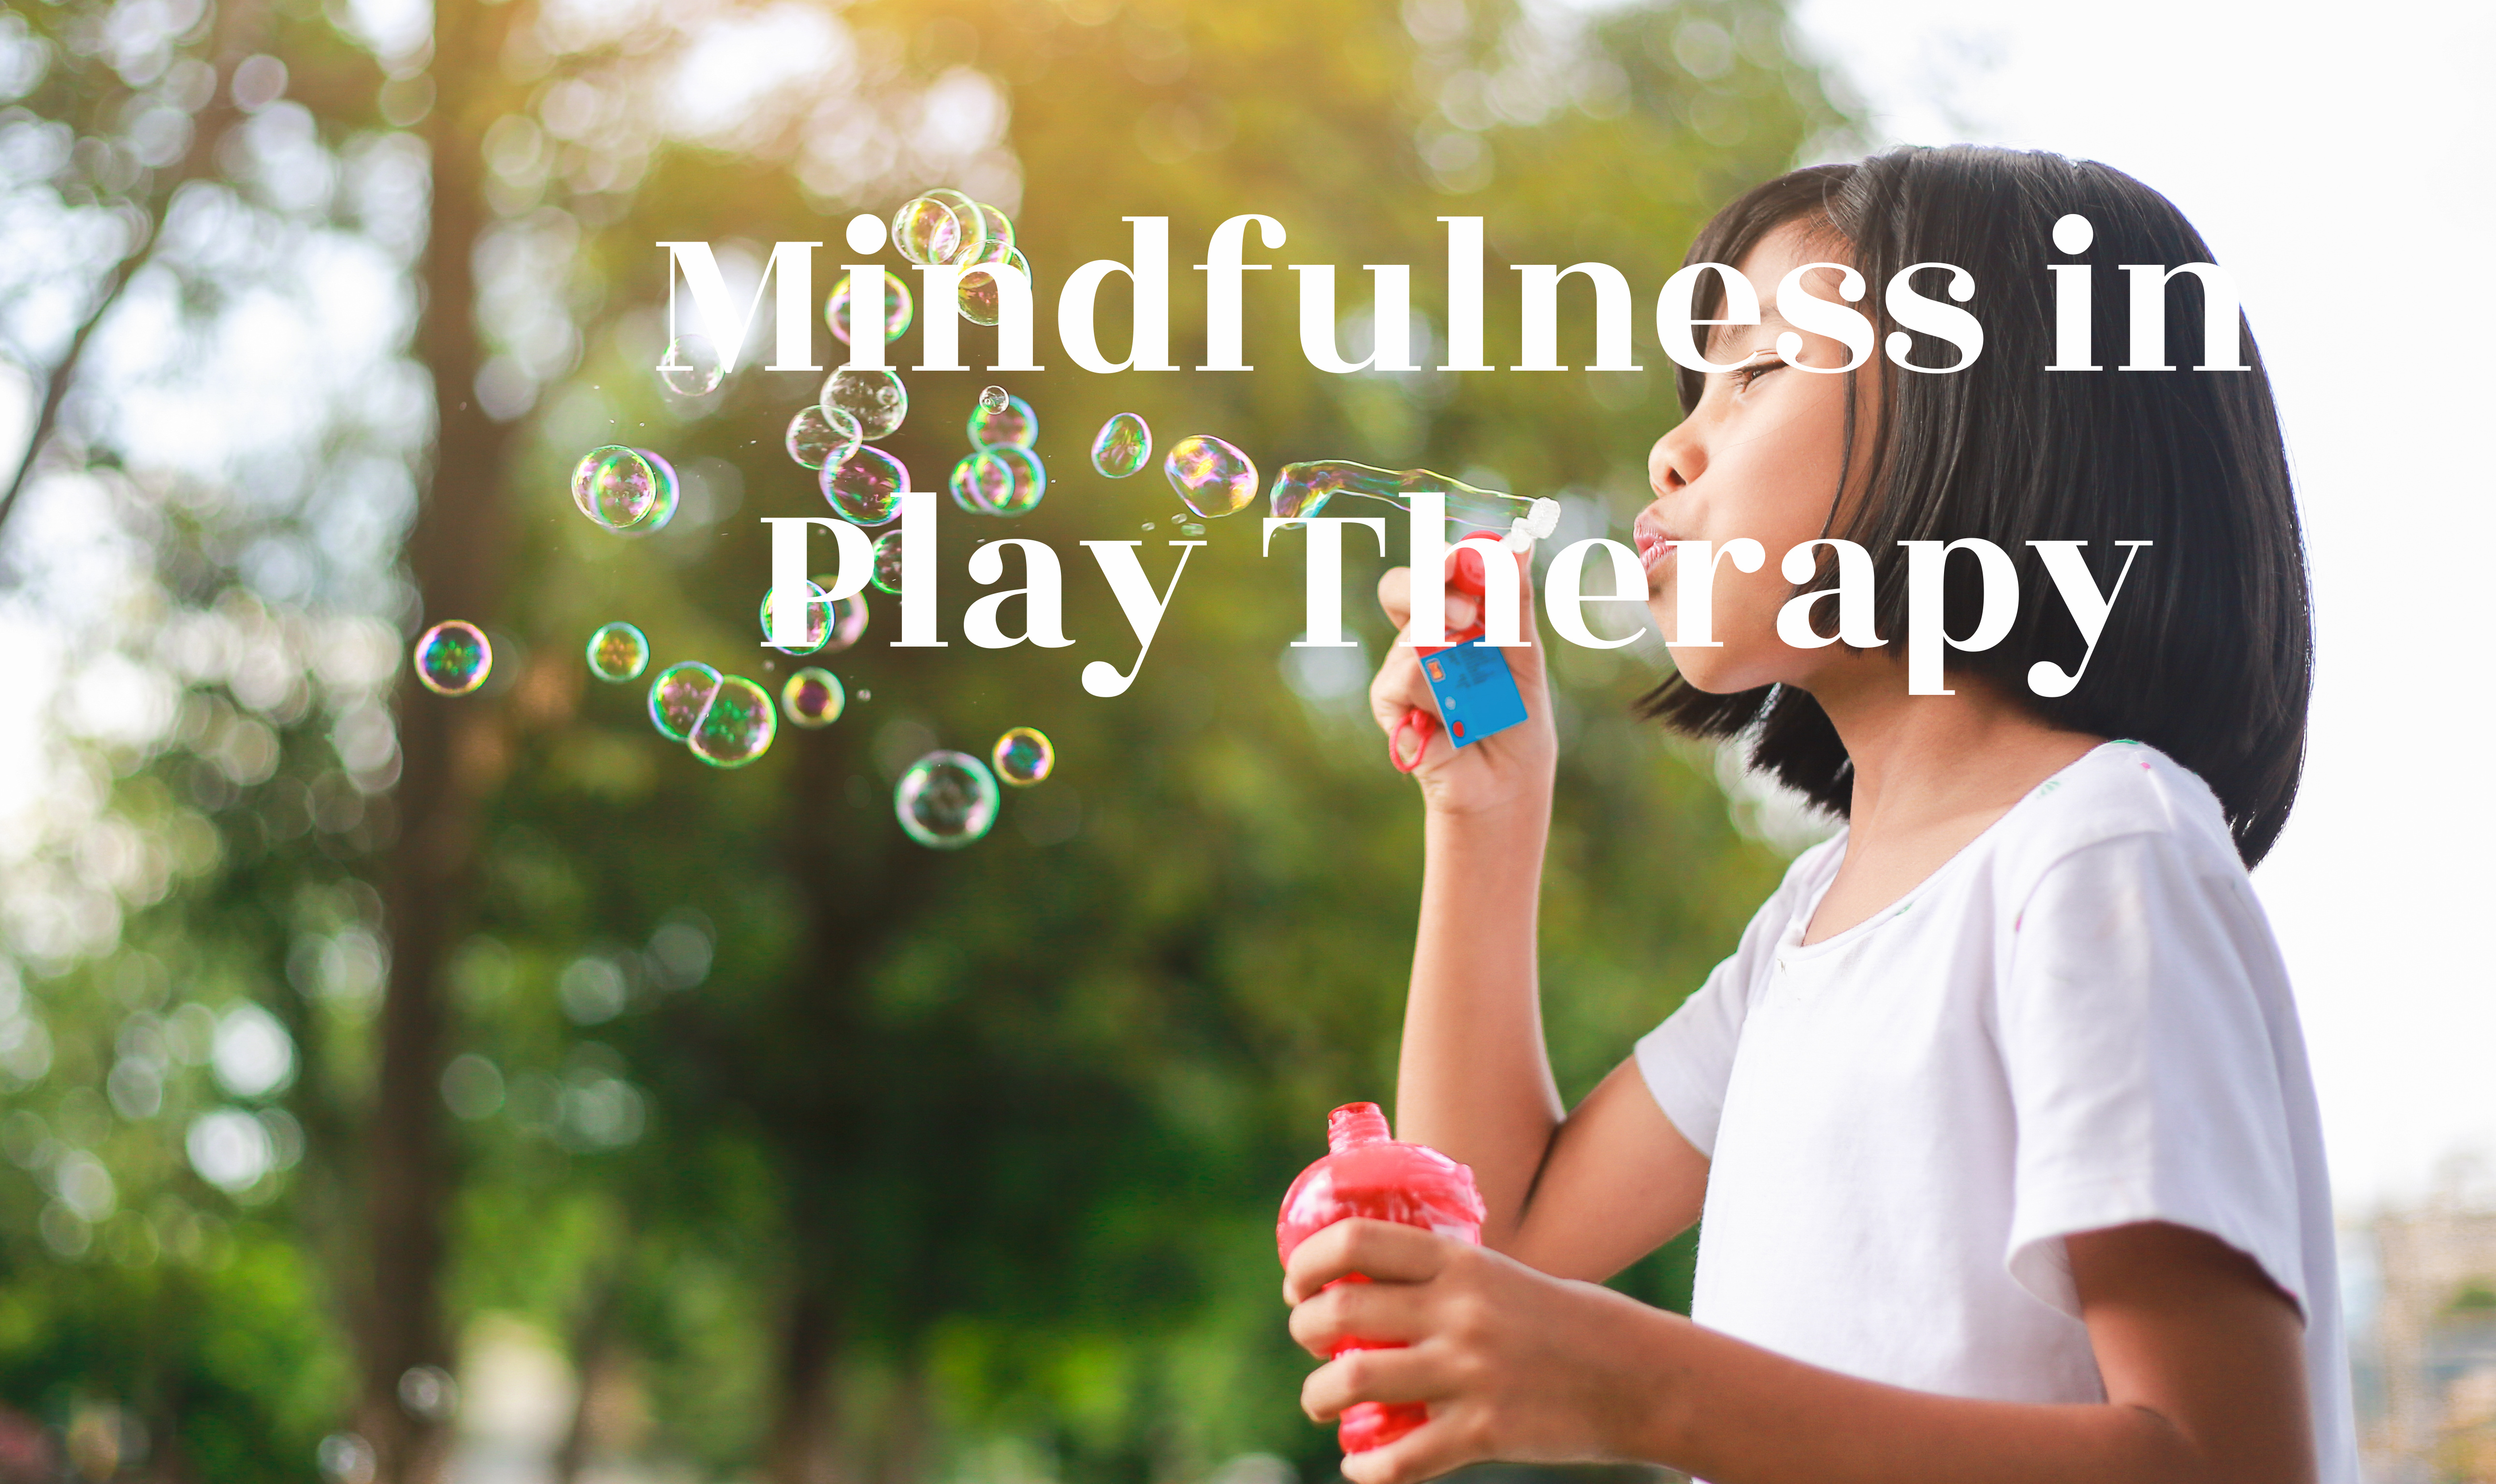 Mindfulness in play therapy